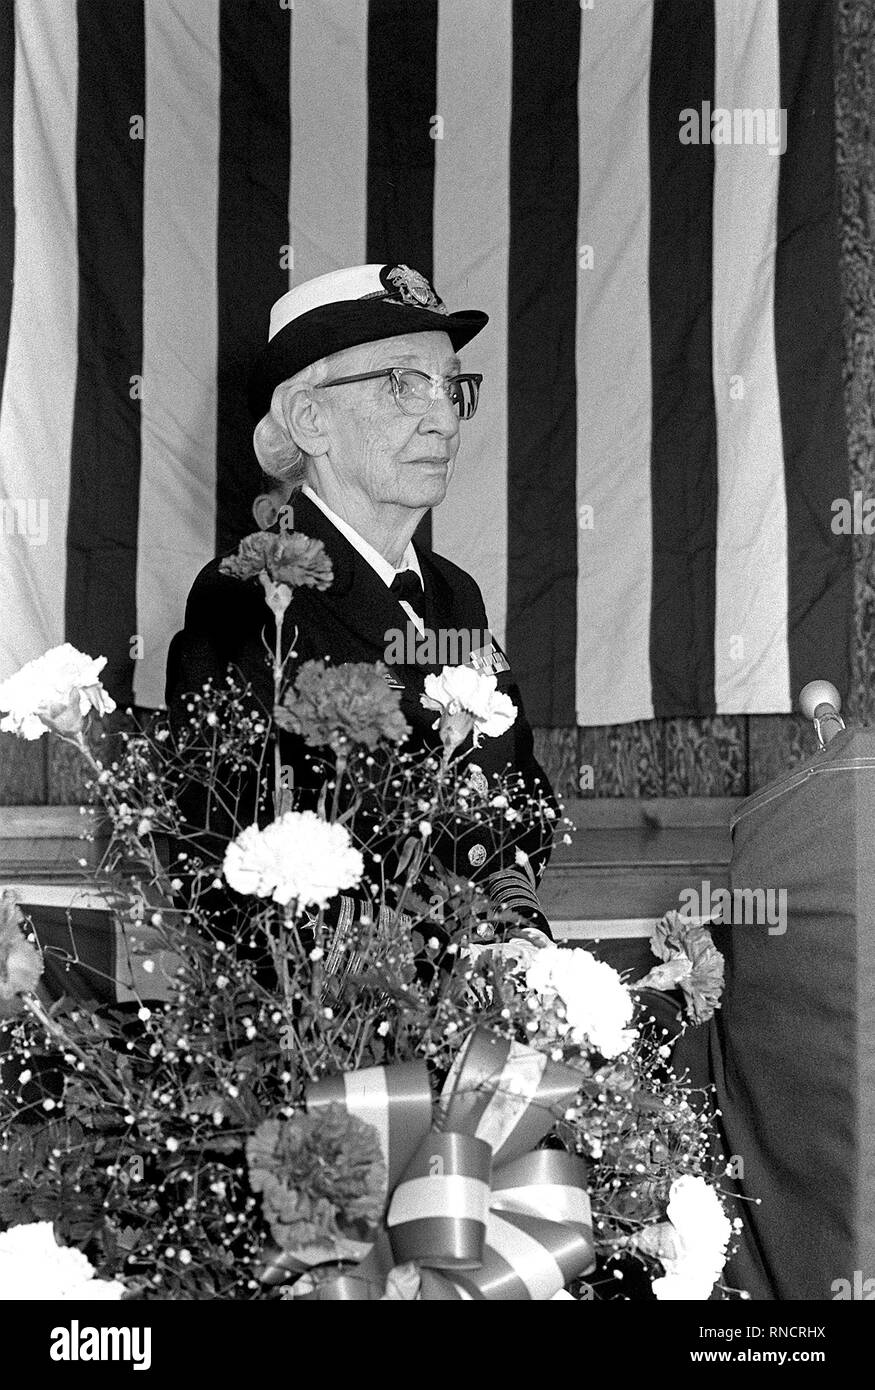 1983 - Capt. Grace Murray Hopper attends a ceremony taking place to dedicate a center for computer learning in her name at Brewster Academy. - Stock Image